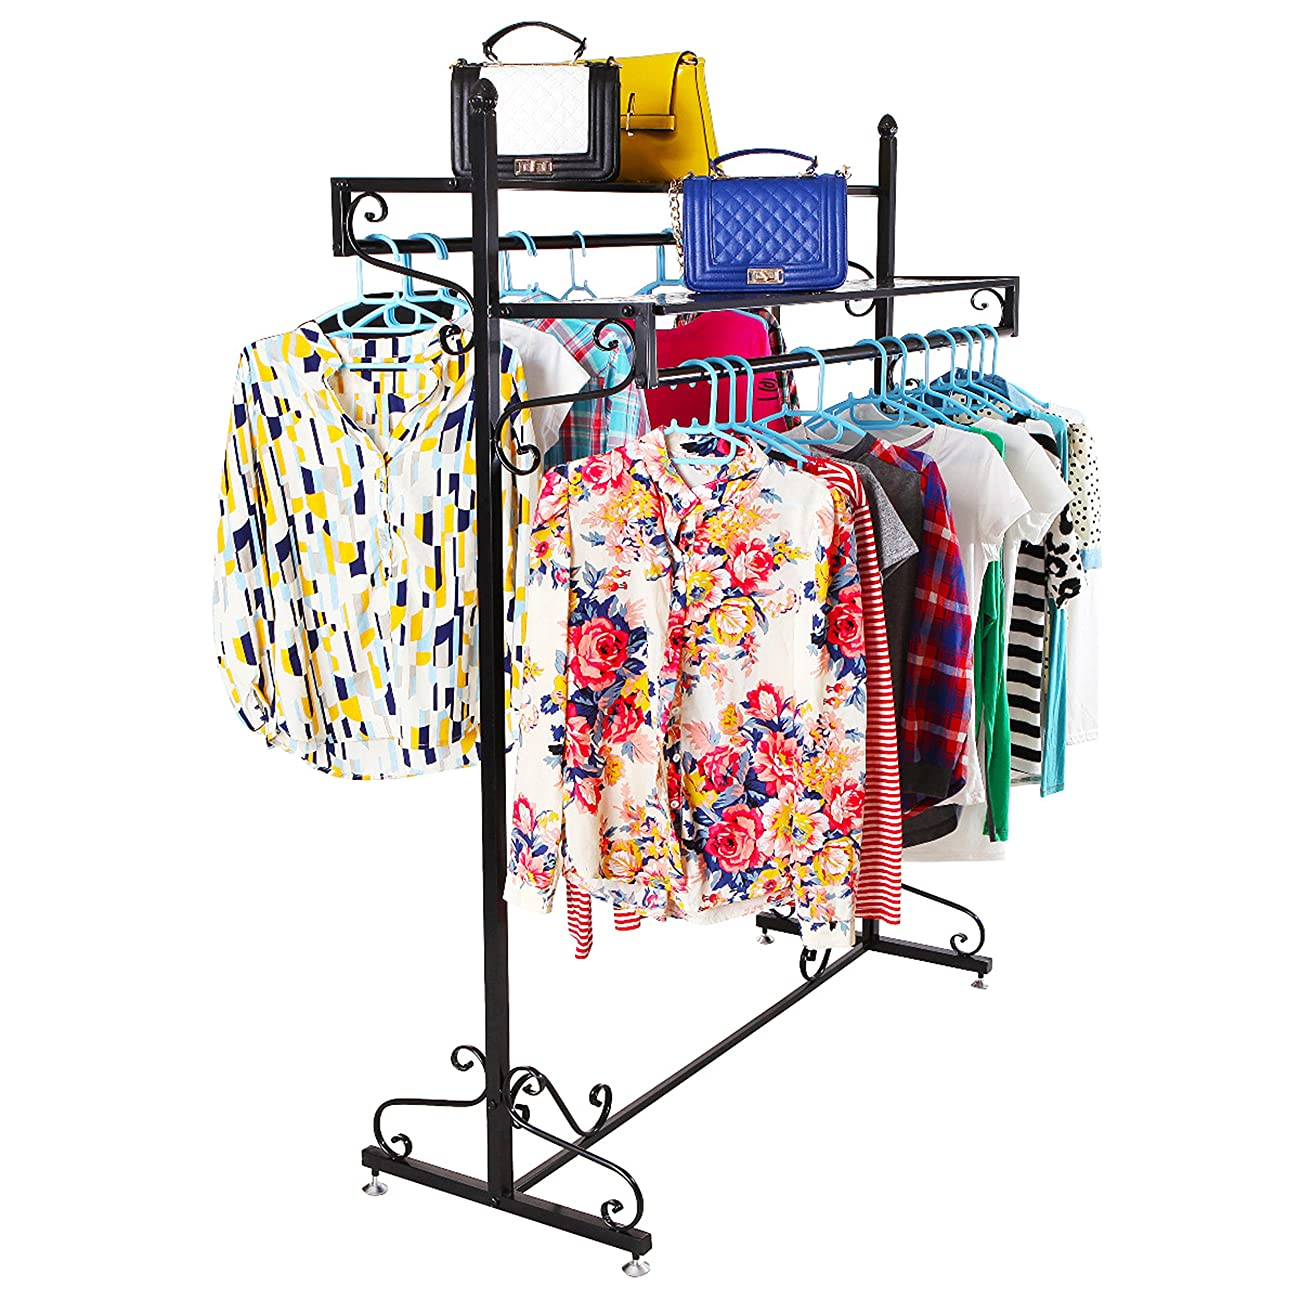 Victorian Style Boutique Clothes / Garment Display Rack w/ Dual Hangrail & Cargo Shelves, Black - MyGift® 1